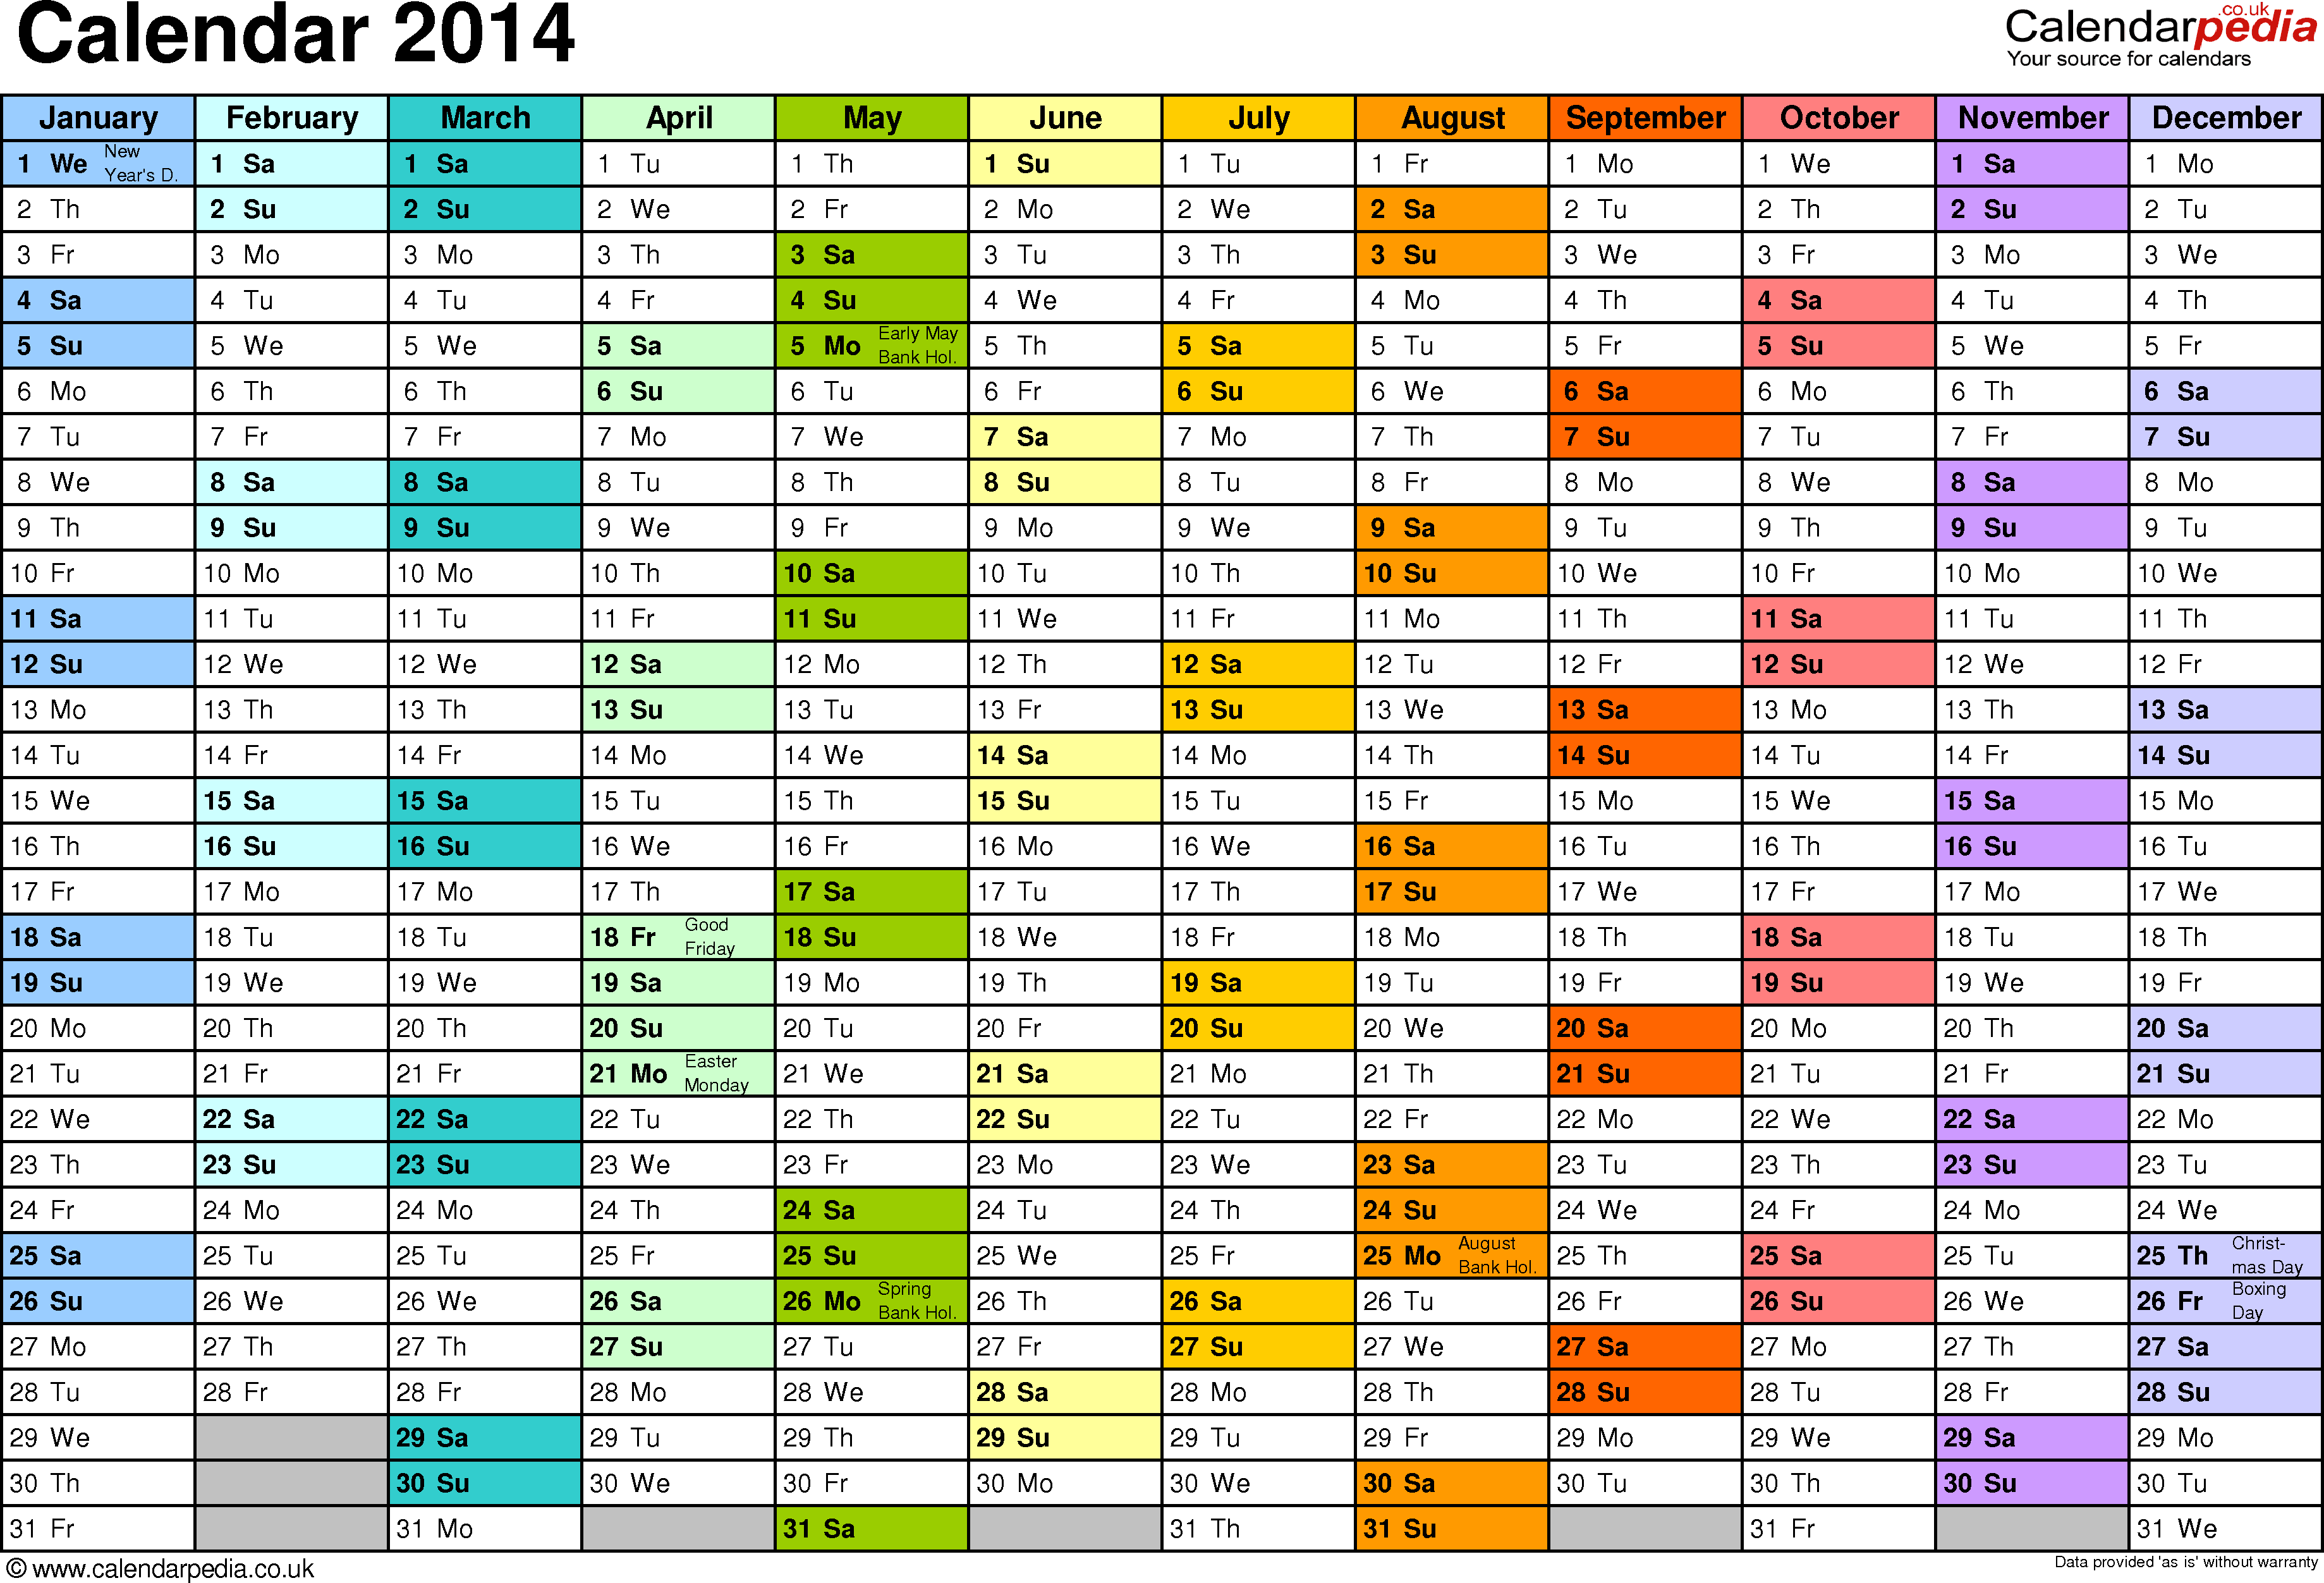 Template 2: Yearly calendar 2014 as PDF template, landscape orientation, A4, 1 page, months horizontally, days vertically, in colour, with UK bank holidays and week numbers